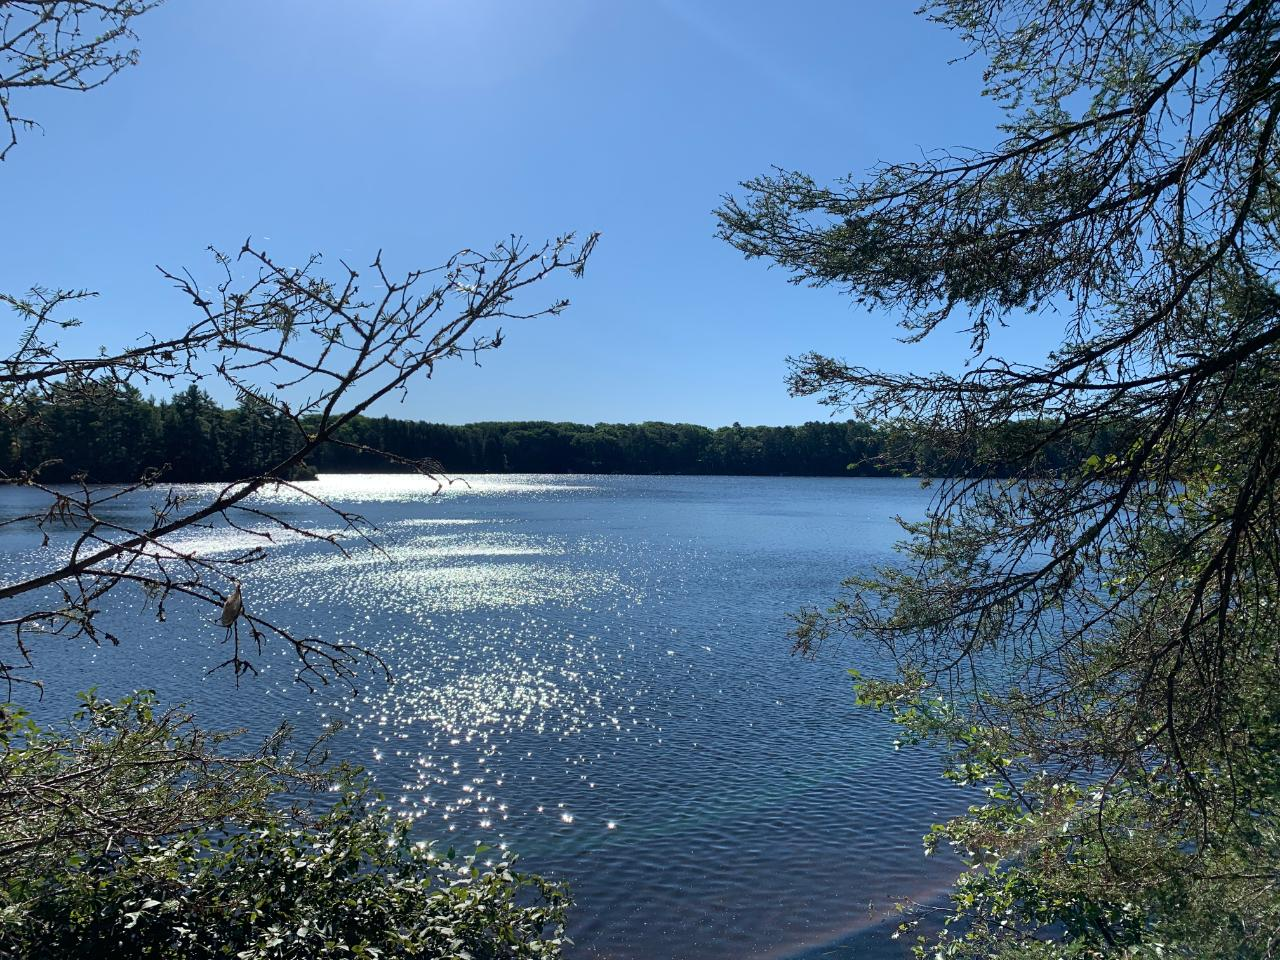 Exceptional building lots now available on Landing Lake in Vilas County. The pristine Landing Lake flows into Mill Lake offering you 328 acres of endless recreation. These lots offer ultimate privacy, towering trees and endless lake views. Sand frontage and crystal clear water.